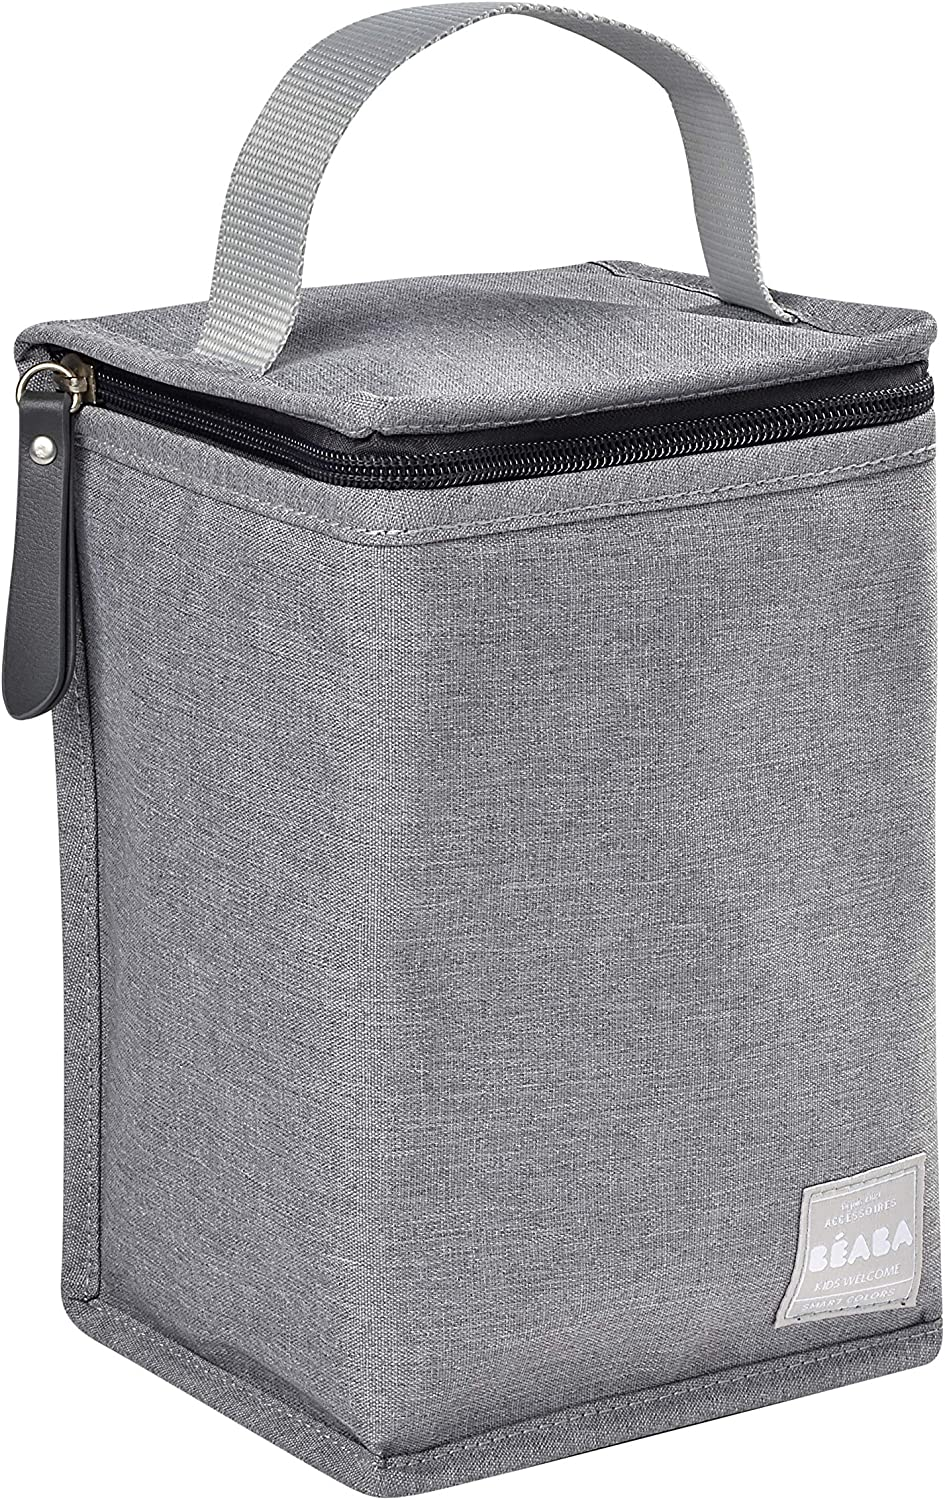 Flecked Grey Beaba Thermal Pouch for Baby/'s Meal